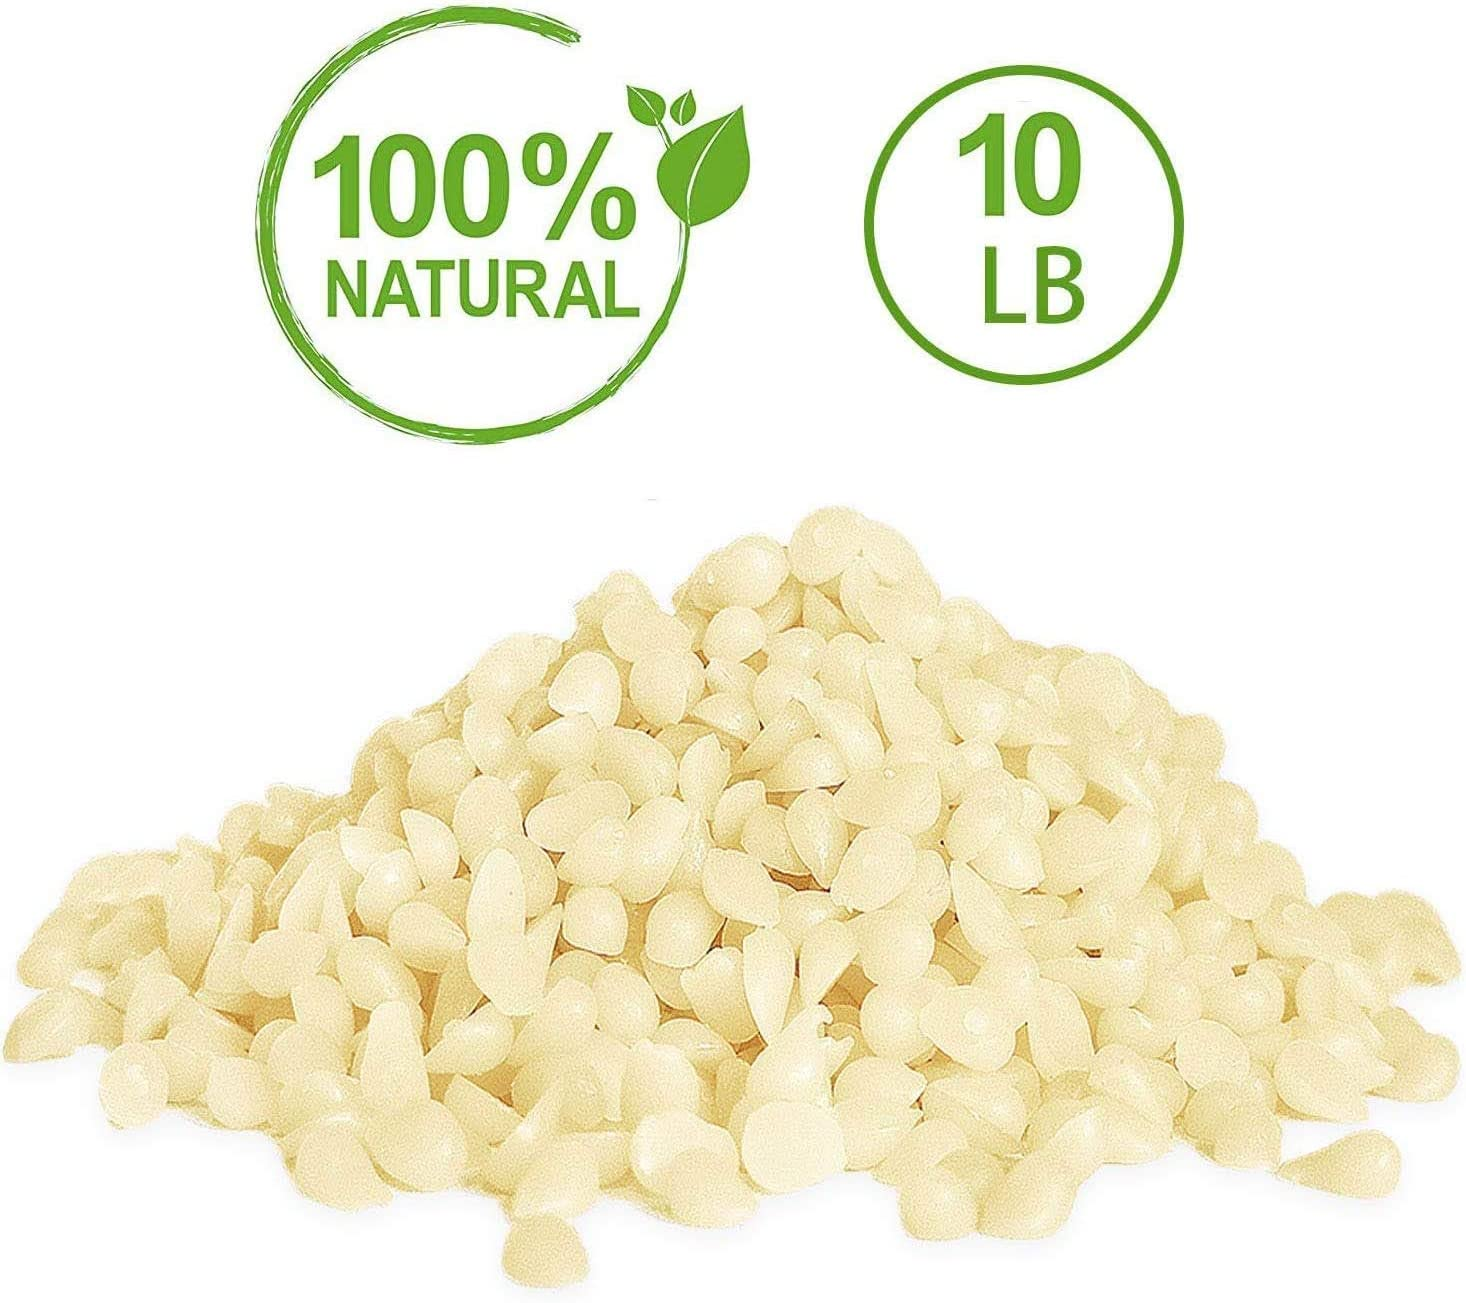 YIHAN White Beeswax Pellets - Natural, Triple Filtered - 10 Pound